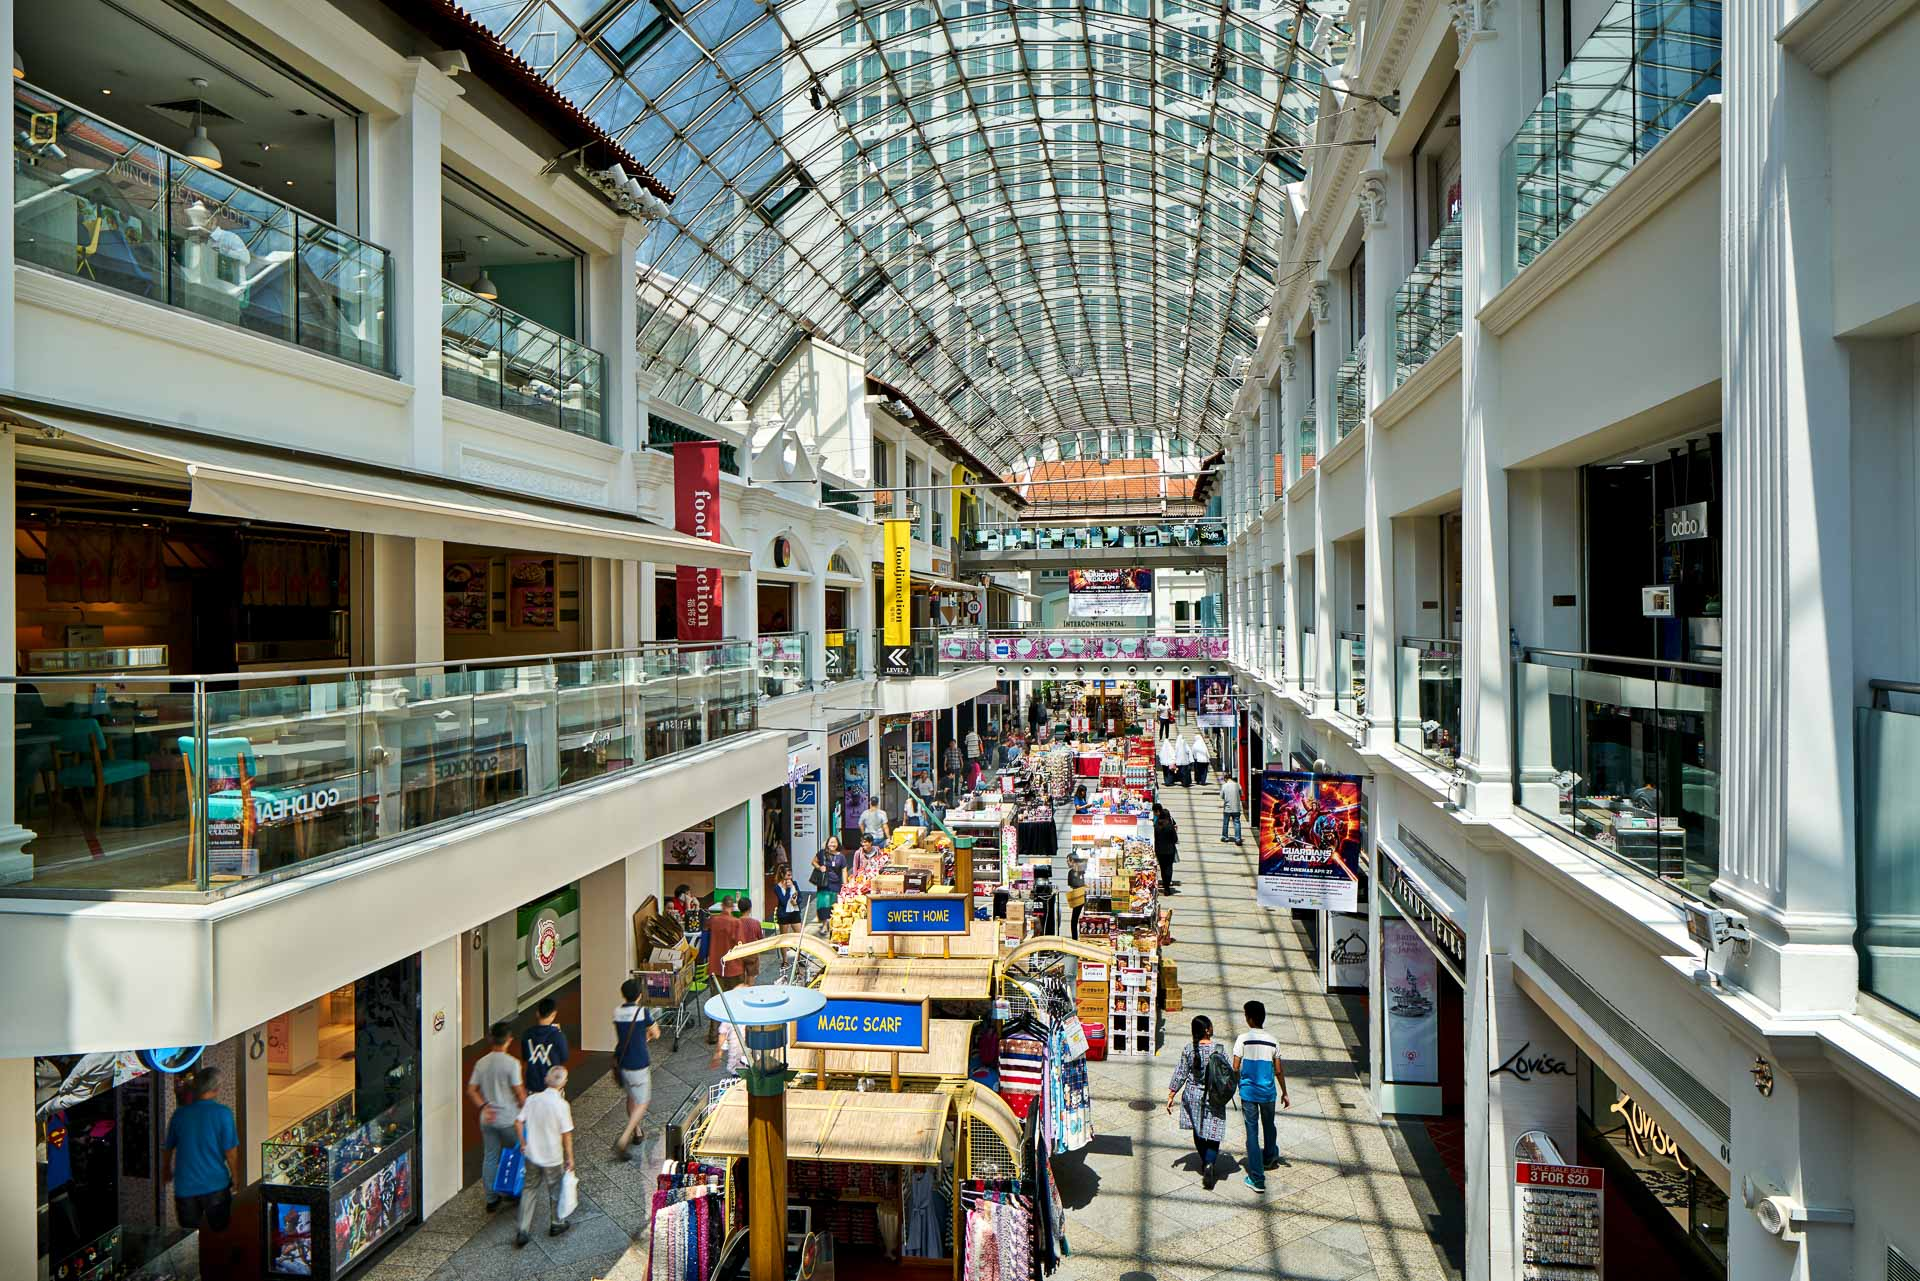 architectural photography showing long rows of shops and stalls at bugis junction mall in singapore